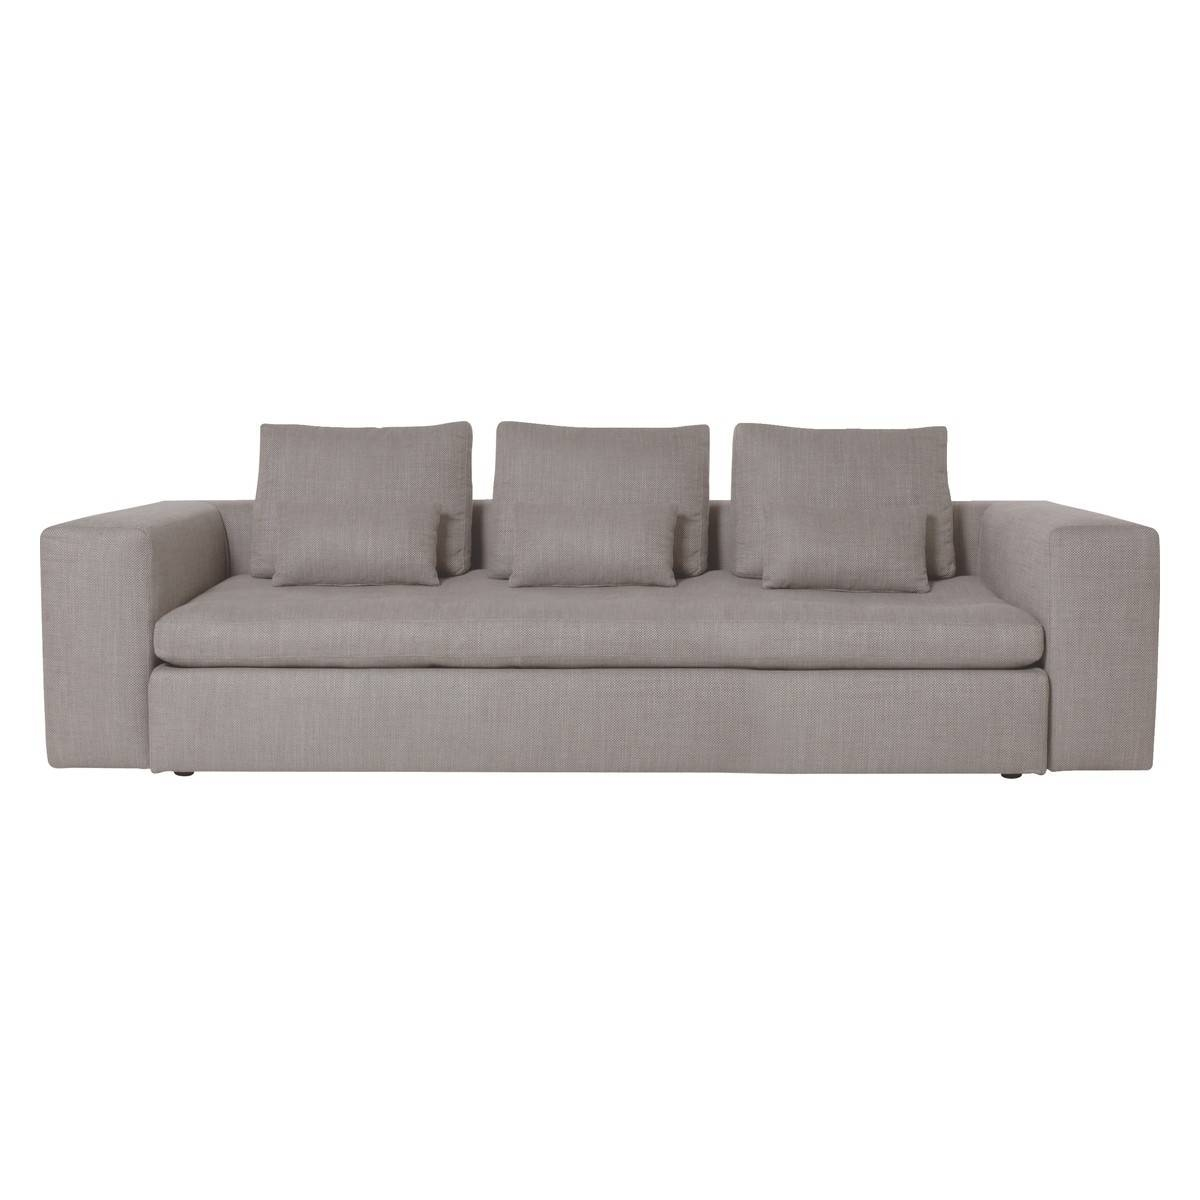 Sidney Light Grey Fabric Large 3 Seater Sofa | Buy Now At Habitat Uk with Large 4 Seater Sofas (Image 29 of 30)